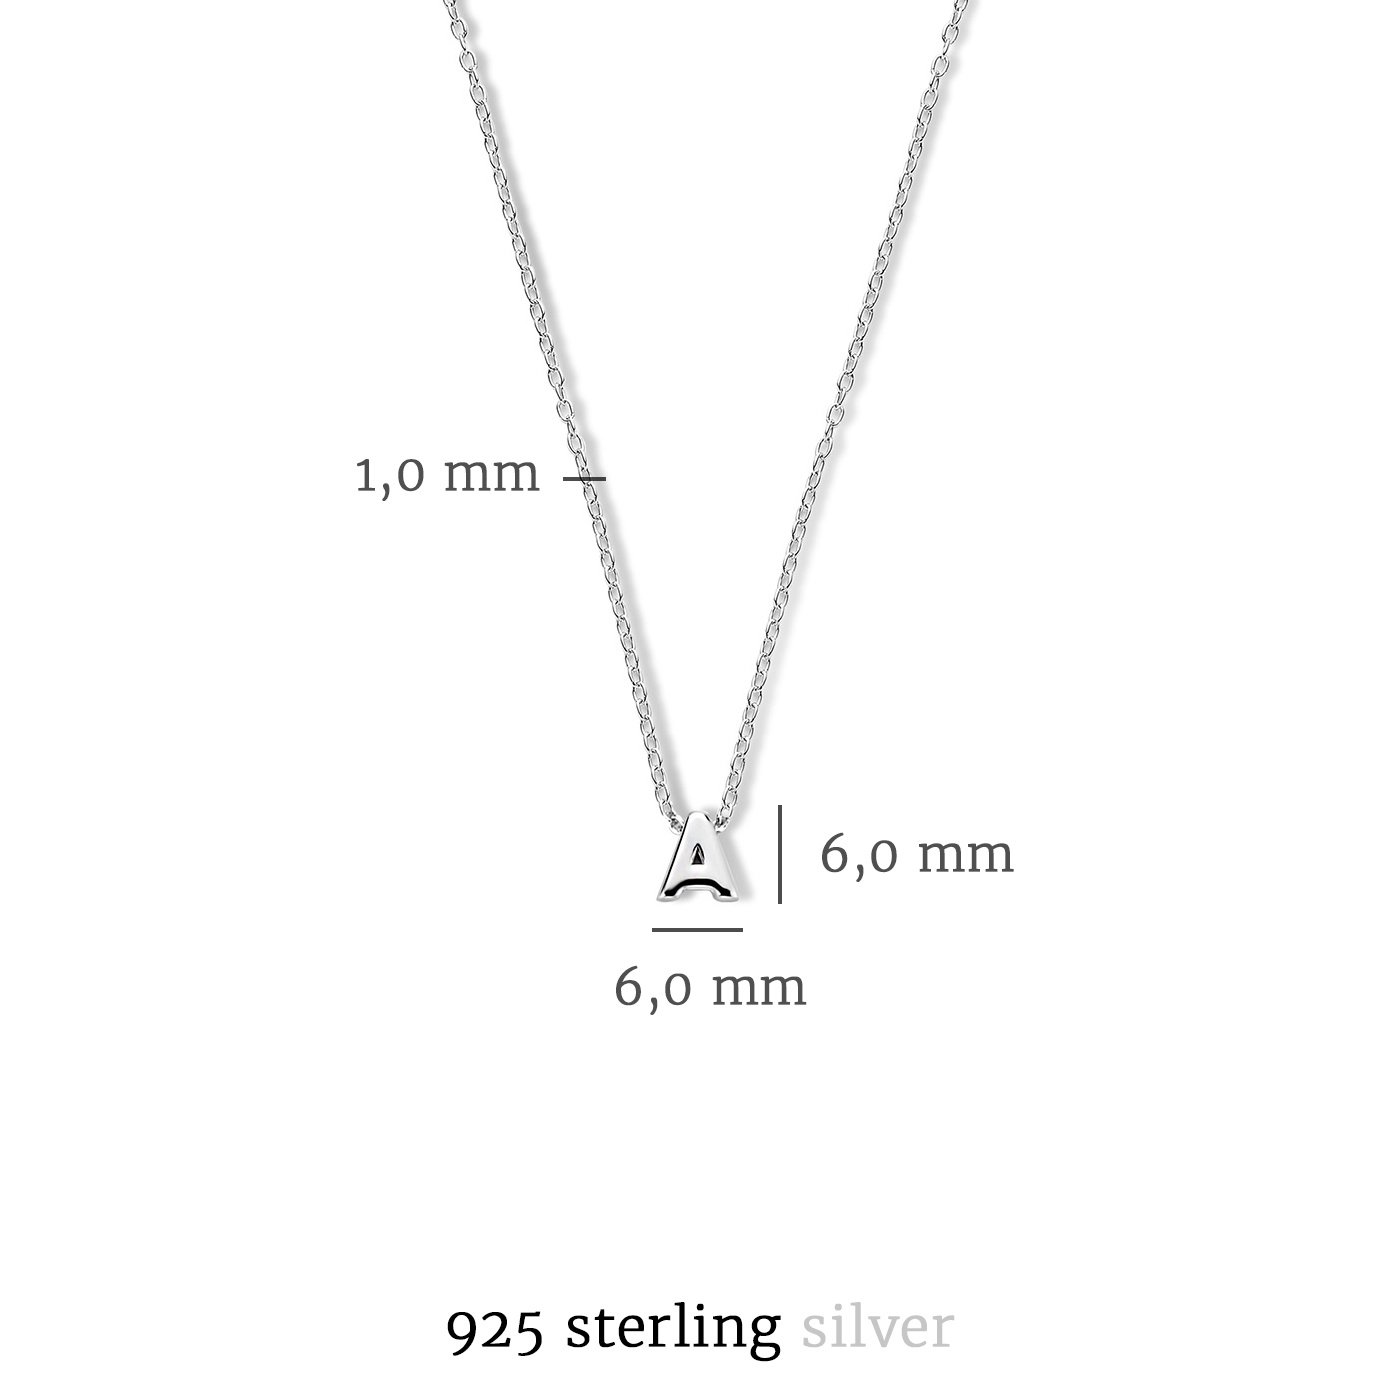 Selected Jewels Julie Chloé collana iniziale in argento sterling 925